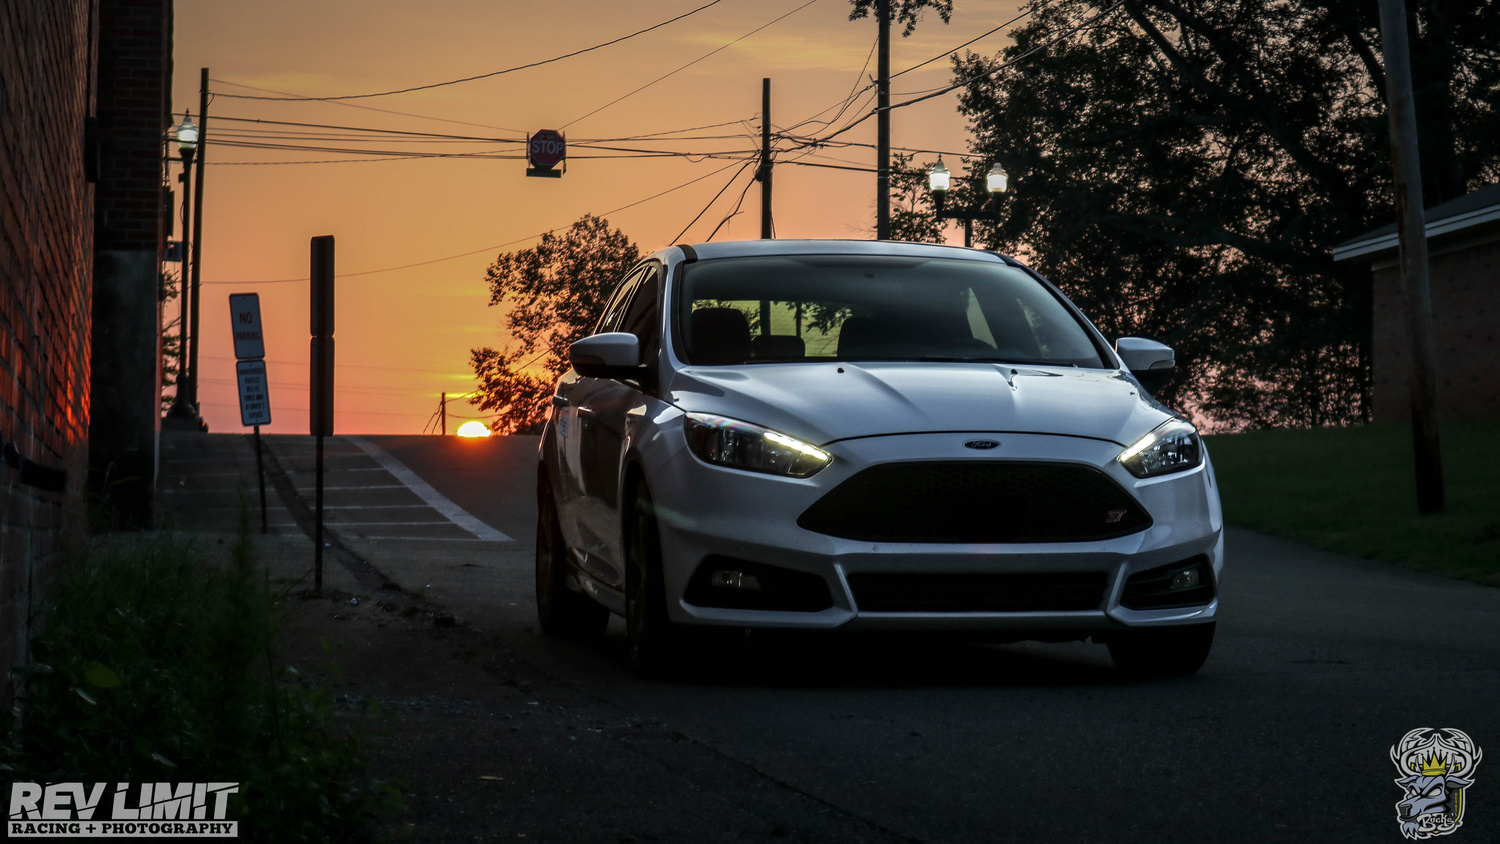 Focus in the sunset by Brandon Holt